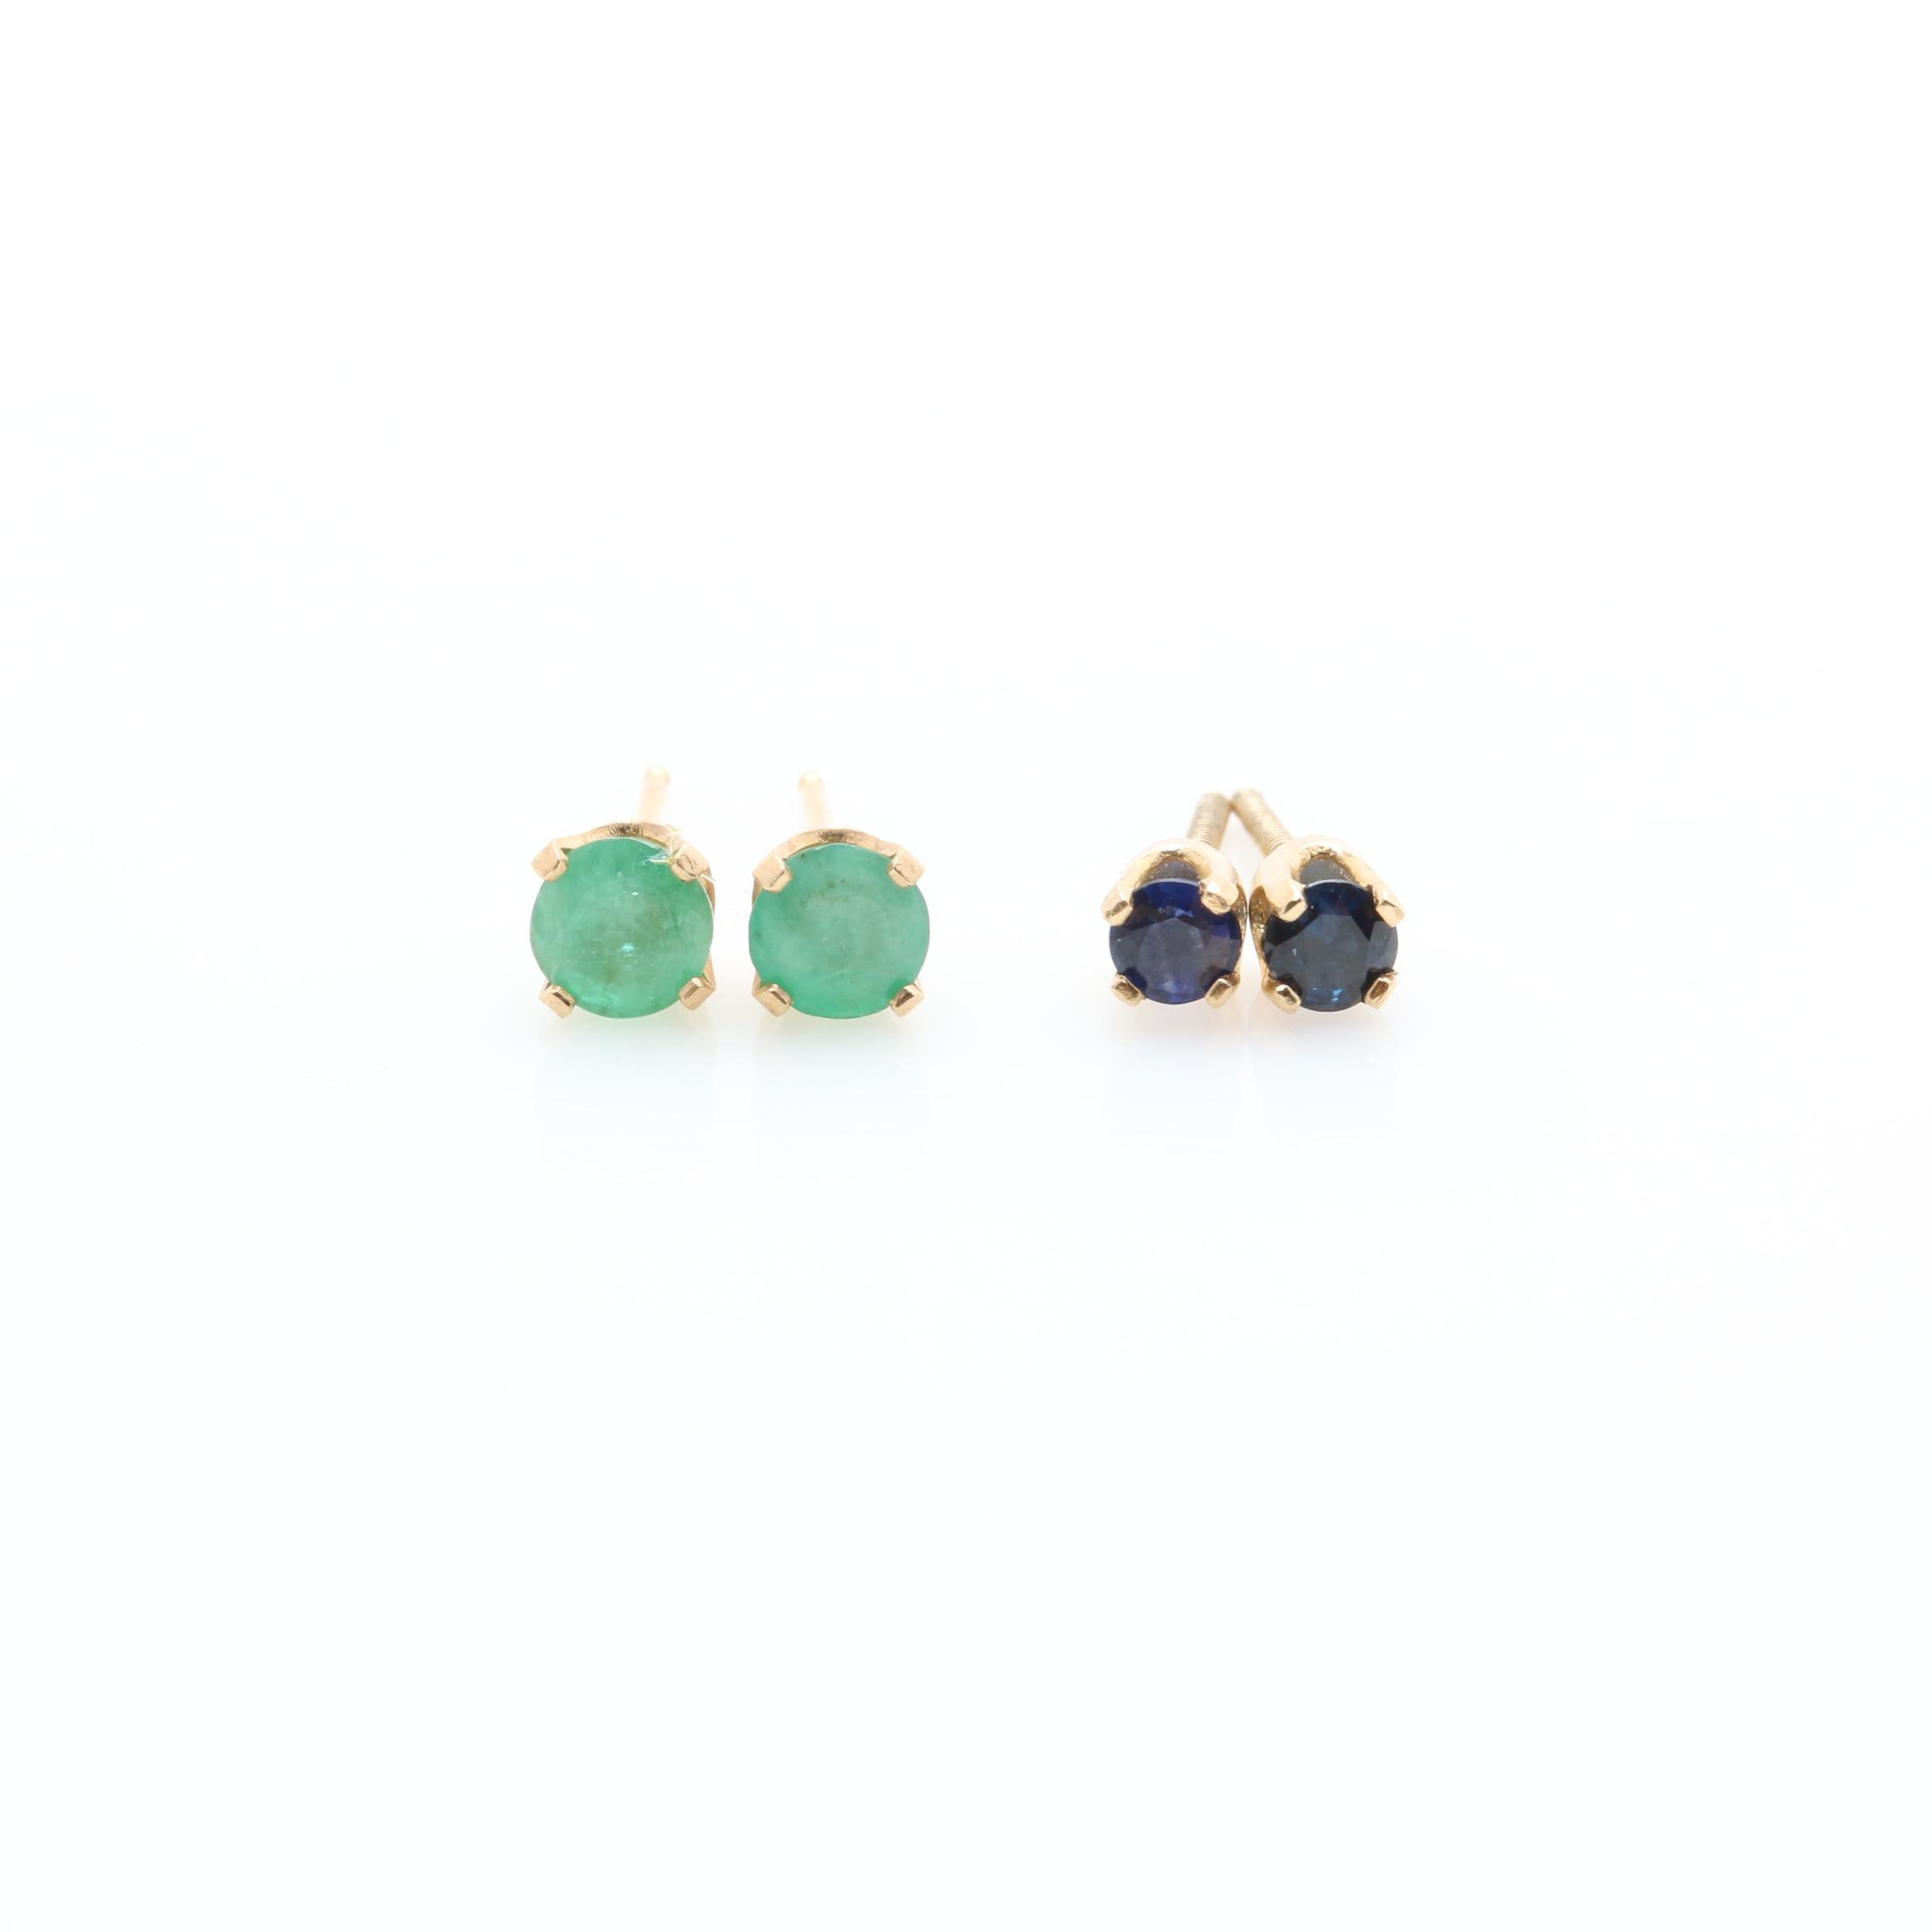 Selection of 14K Yellow Gold Blue Sapphire and Emerald Stud Earrings